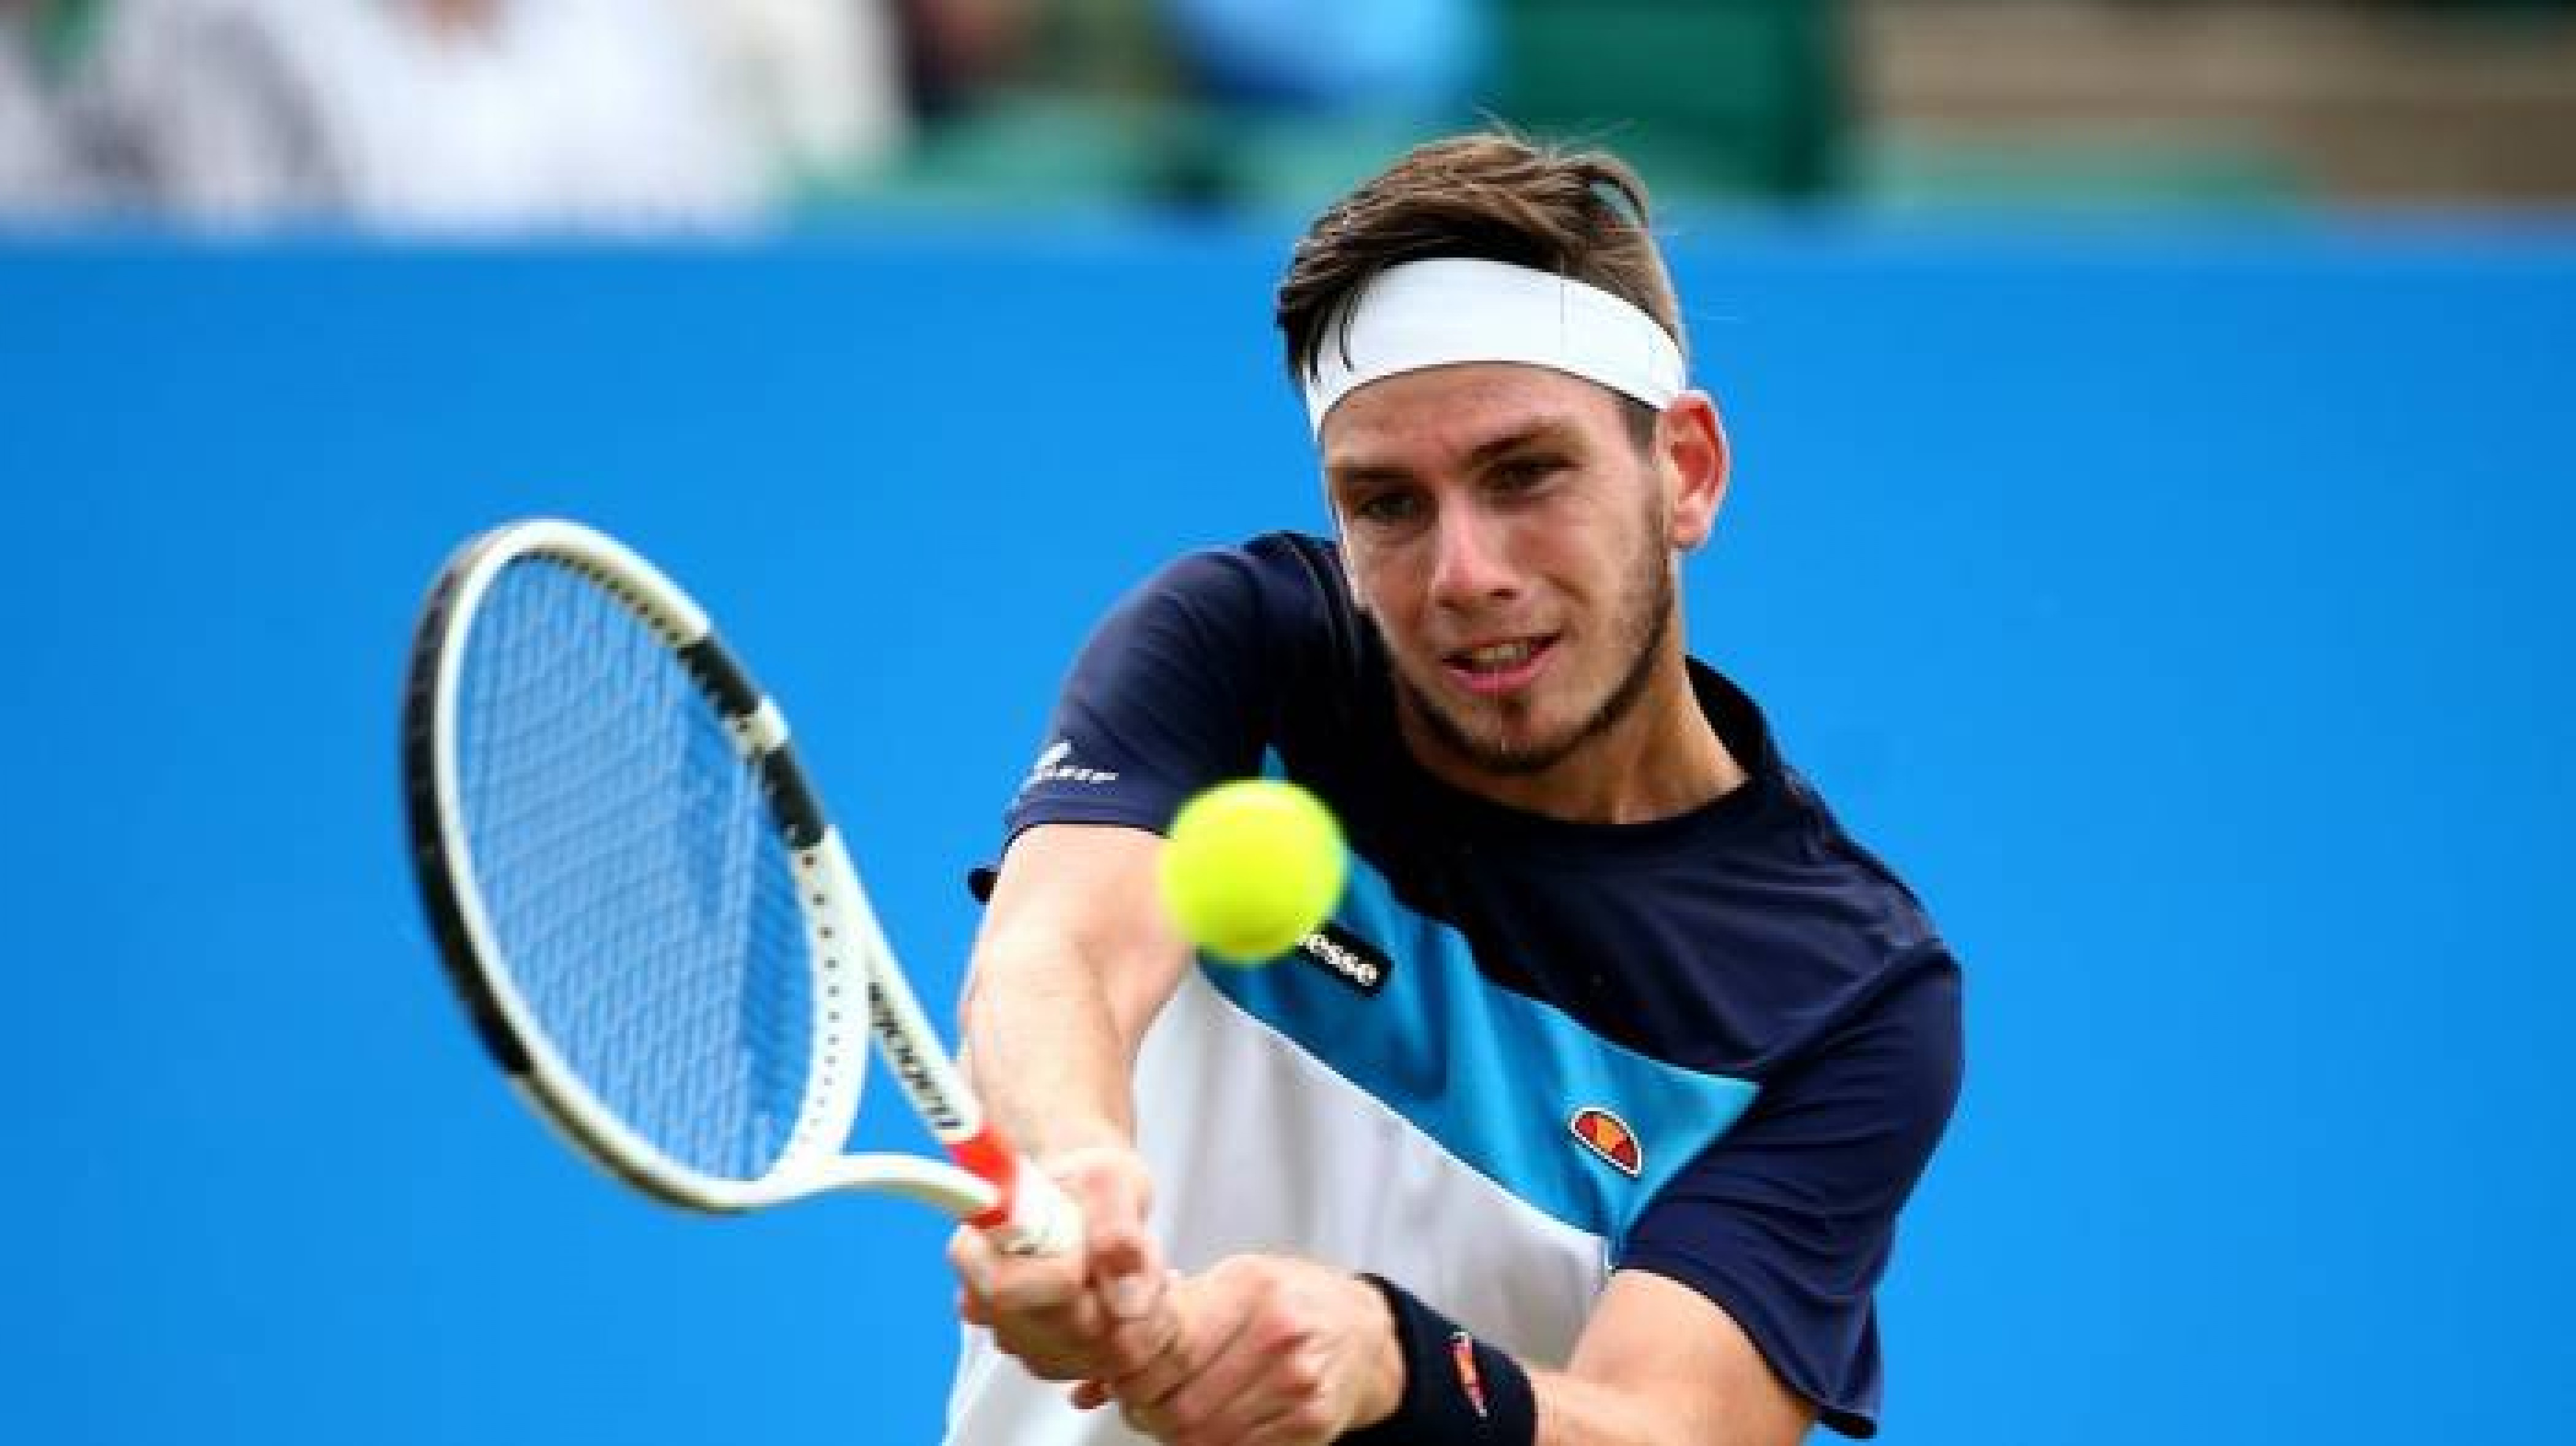 Davis Cup: Cameron Norrie obliterates Uzbekistan's Sanjay Fayziev to secure seeding for Great Britain